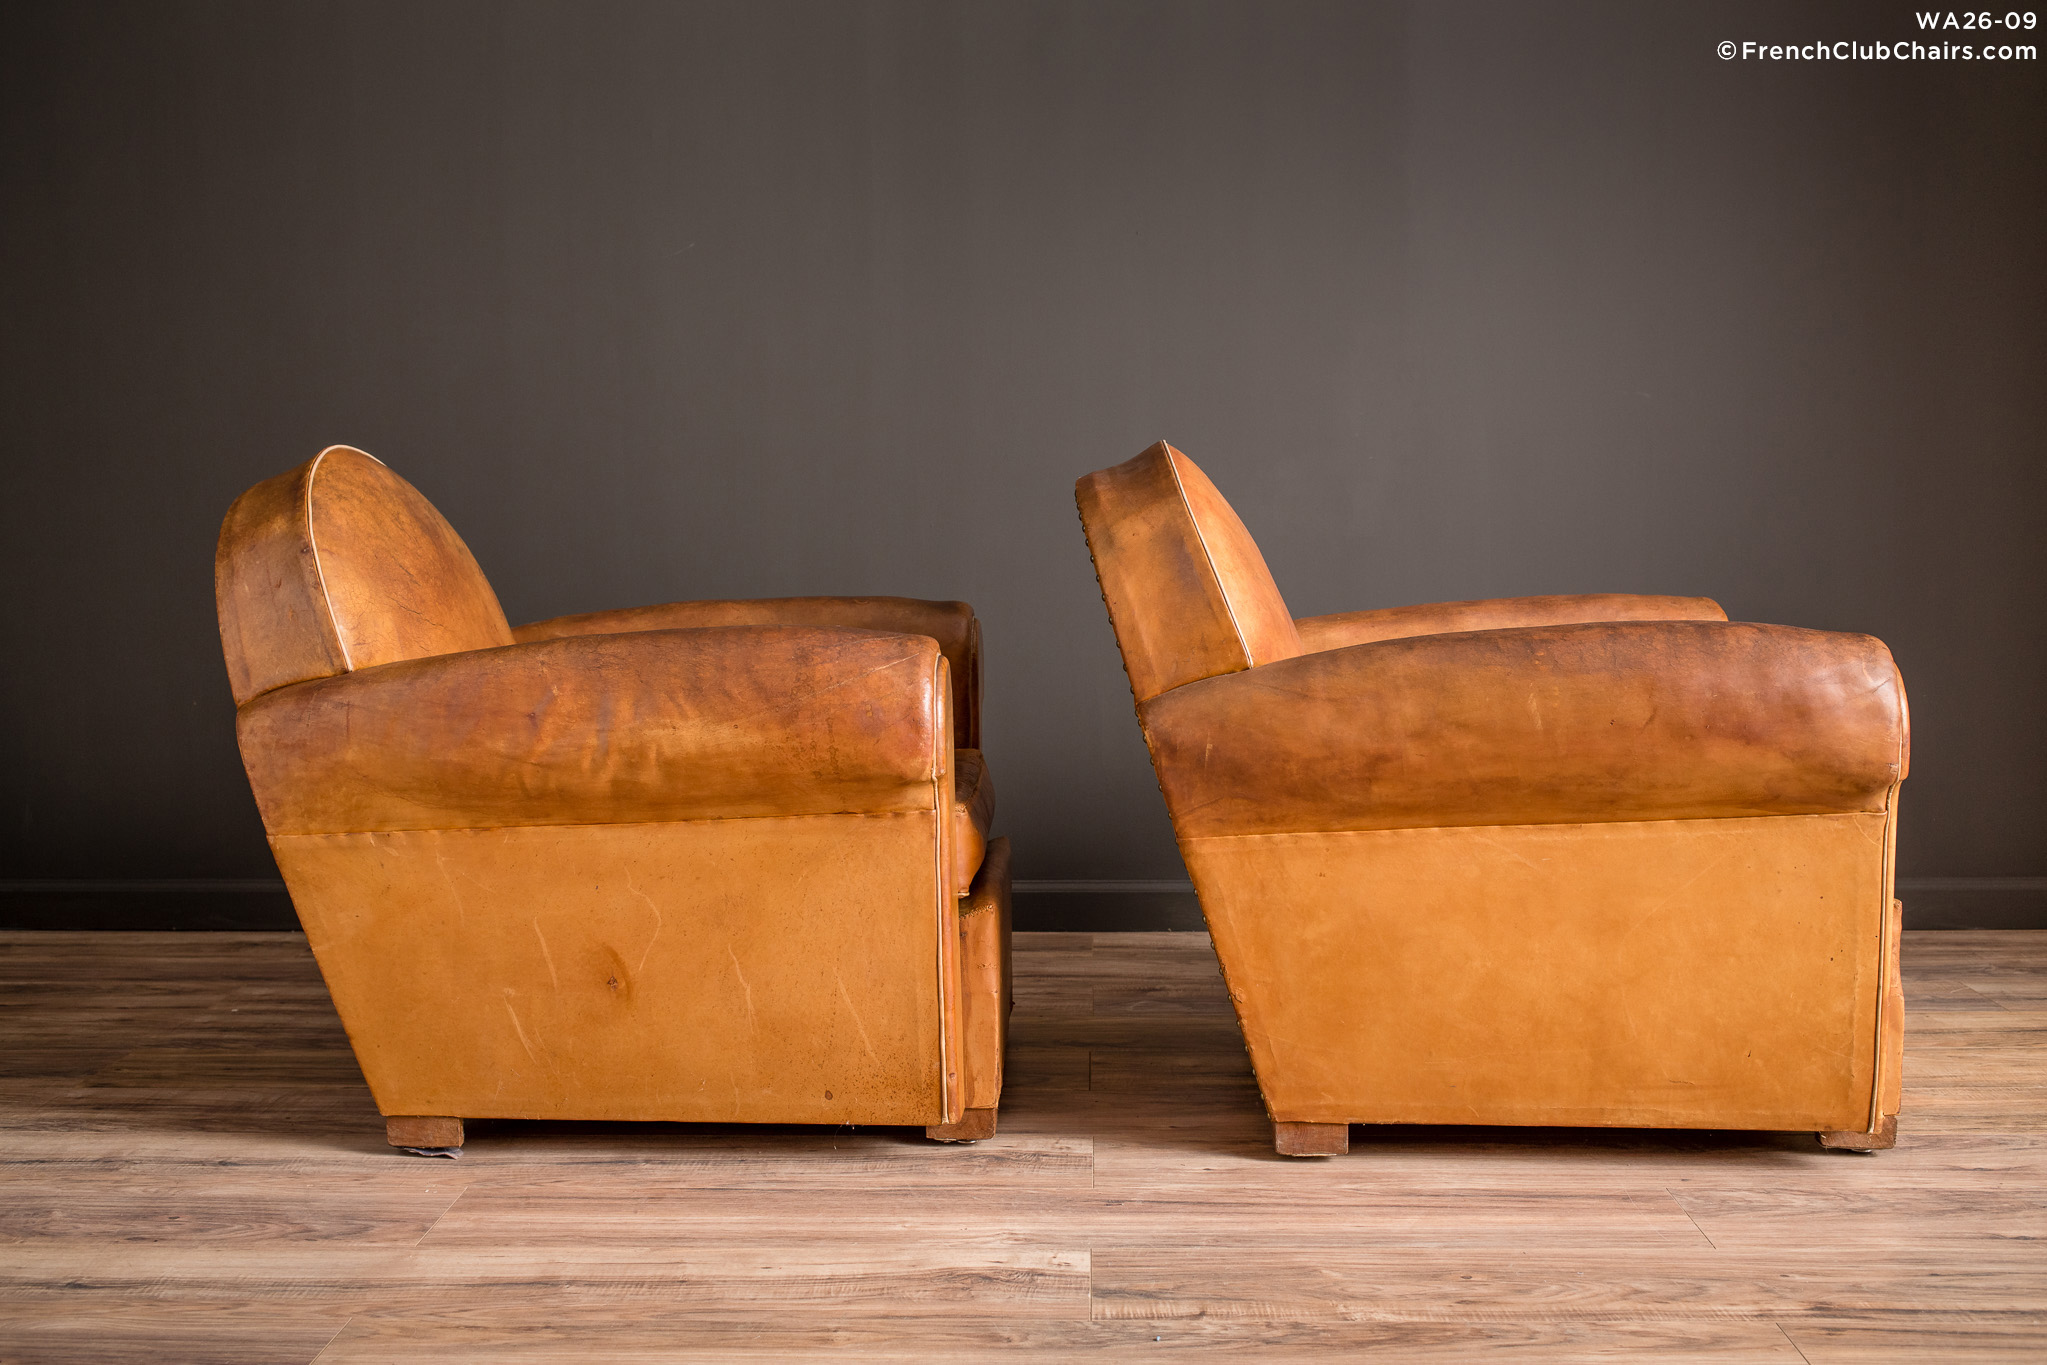 WA_26-09_Bern_Cinema_Clair_pair_R_3RT-v01-williams-antiks-leather-french-club-chair-wa_fcccom